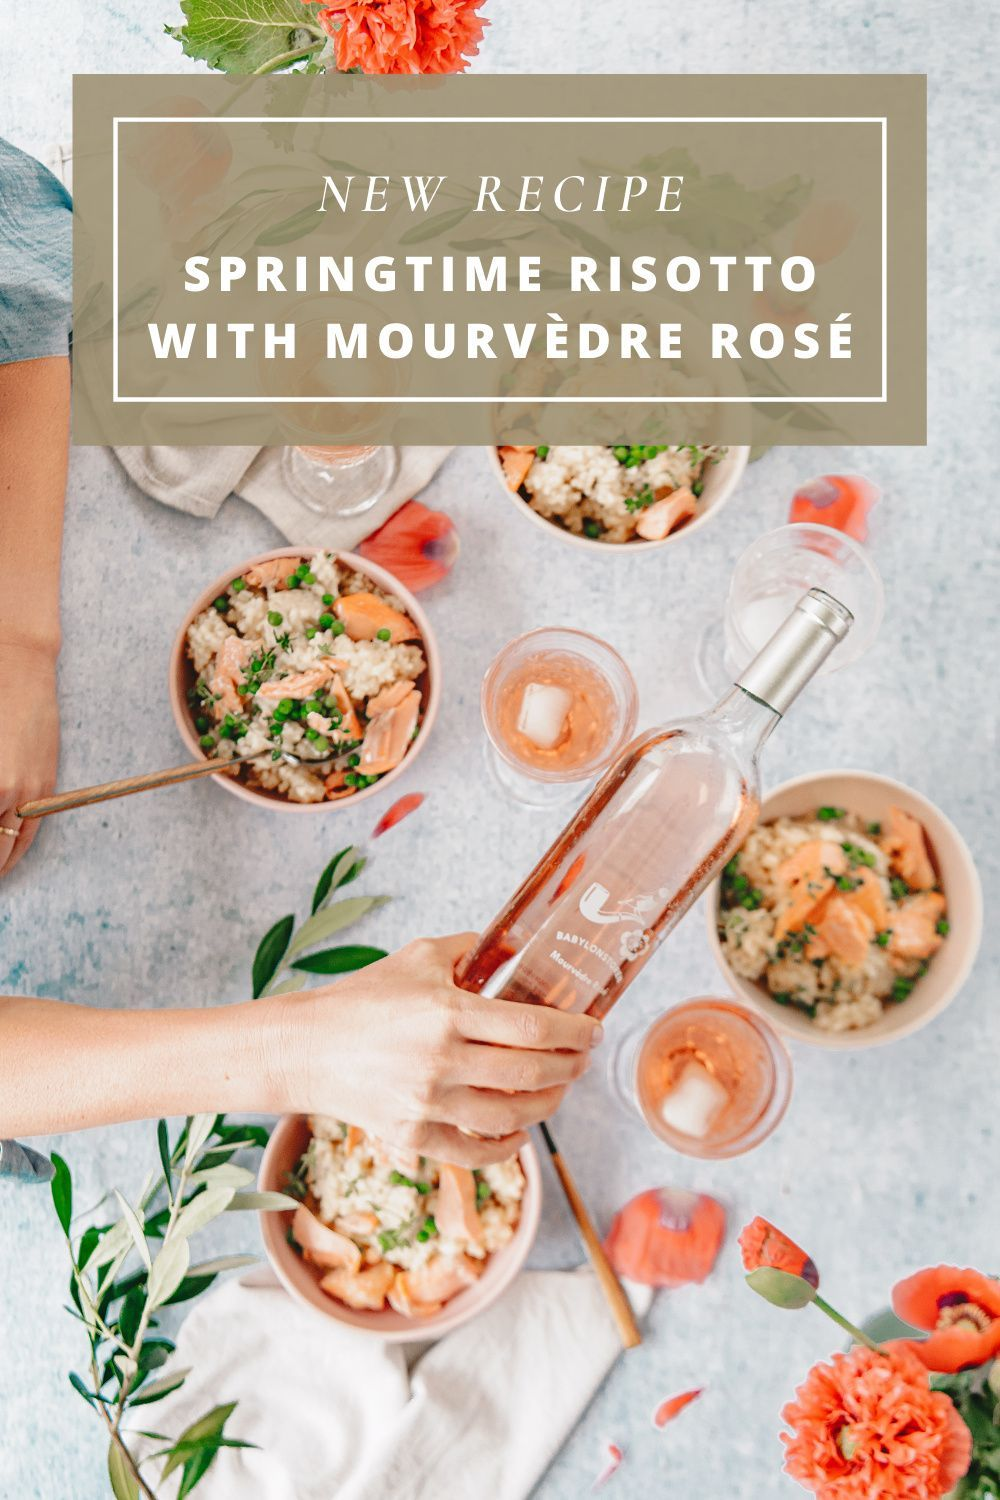 Springtime Risotto With Roasted Trout And Baby Peas Sarah Graham Food Recipe In 2020 Healthy Summer Recipes Risotto Recipes Risotto